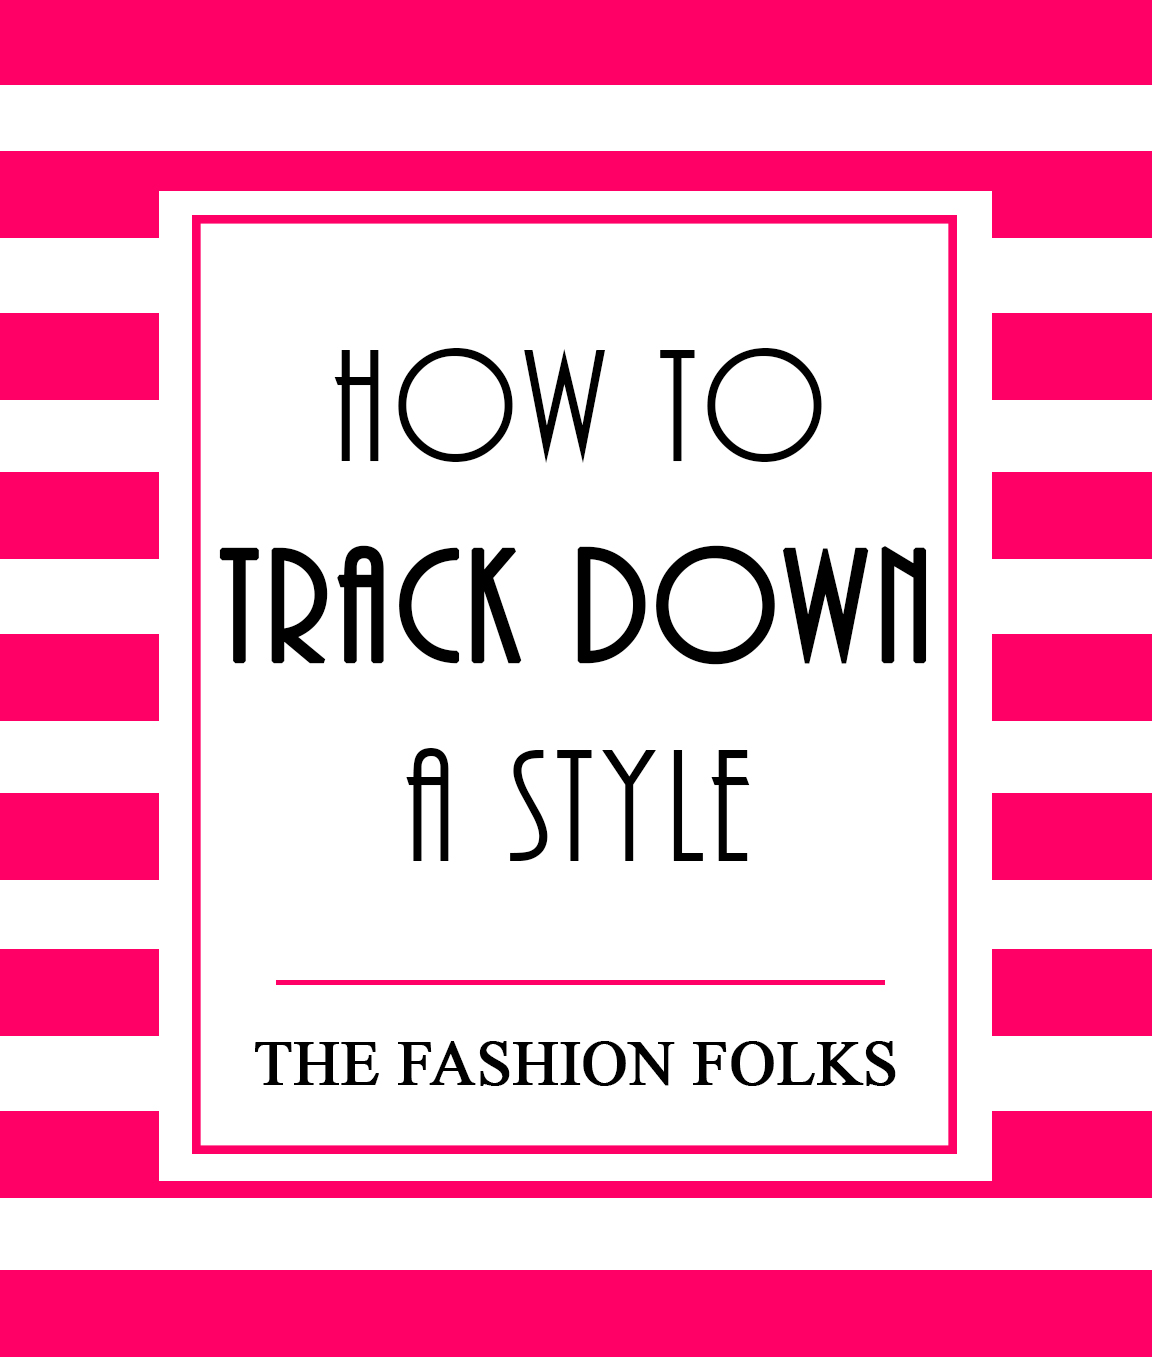 How To Track Down A Style | The Fashion Folks